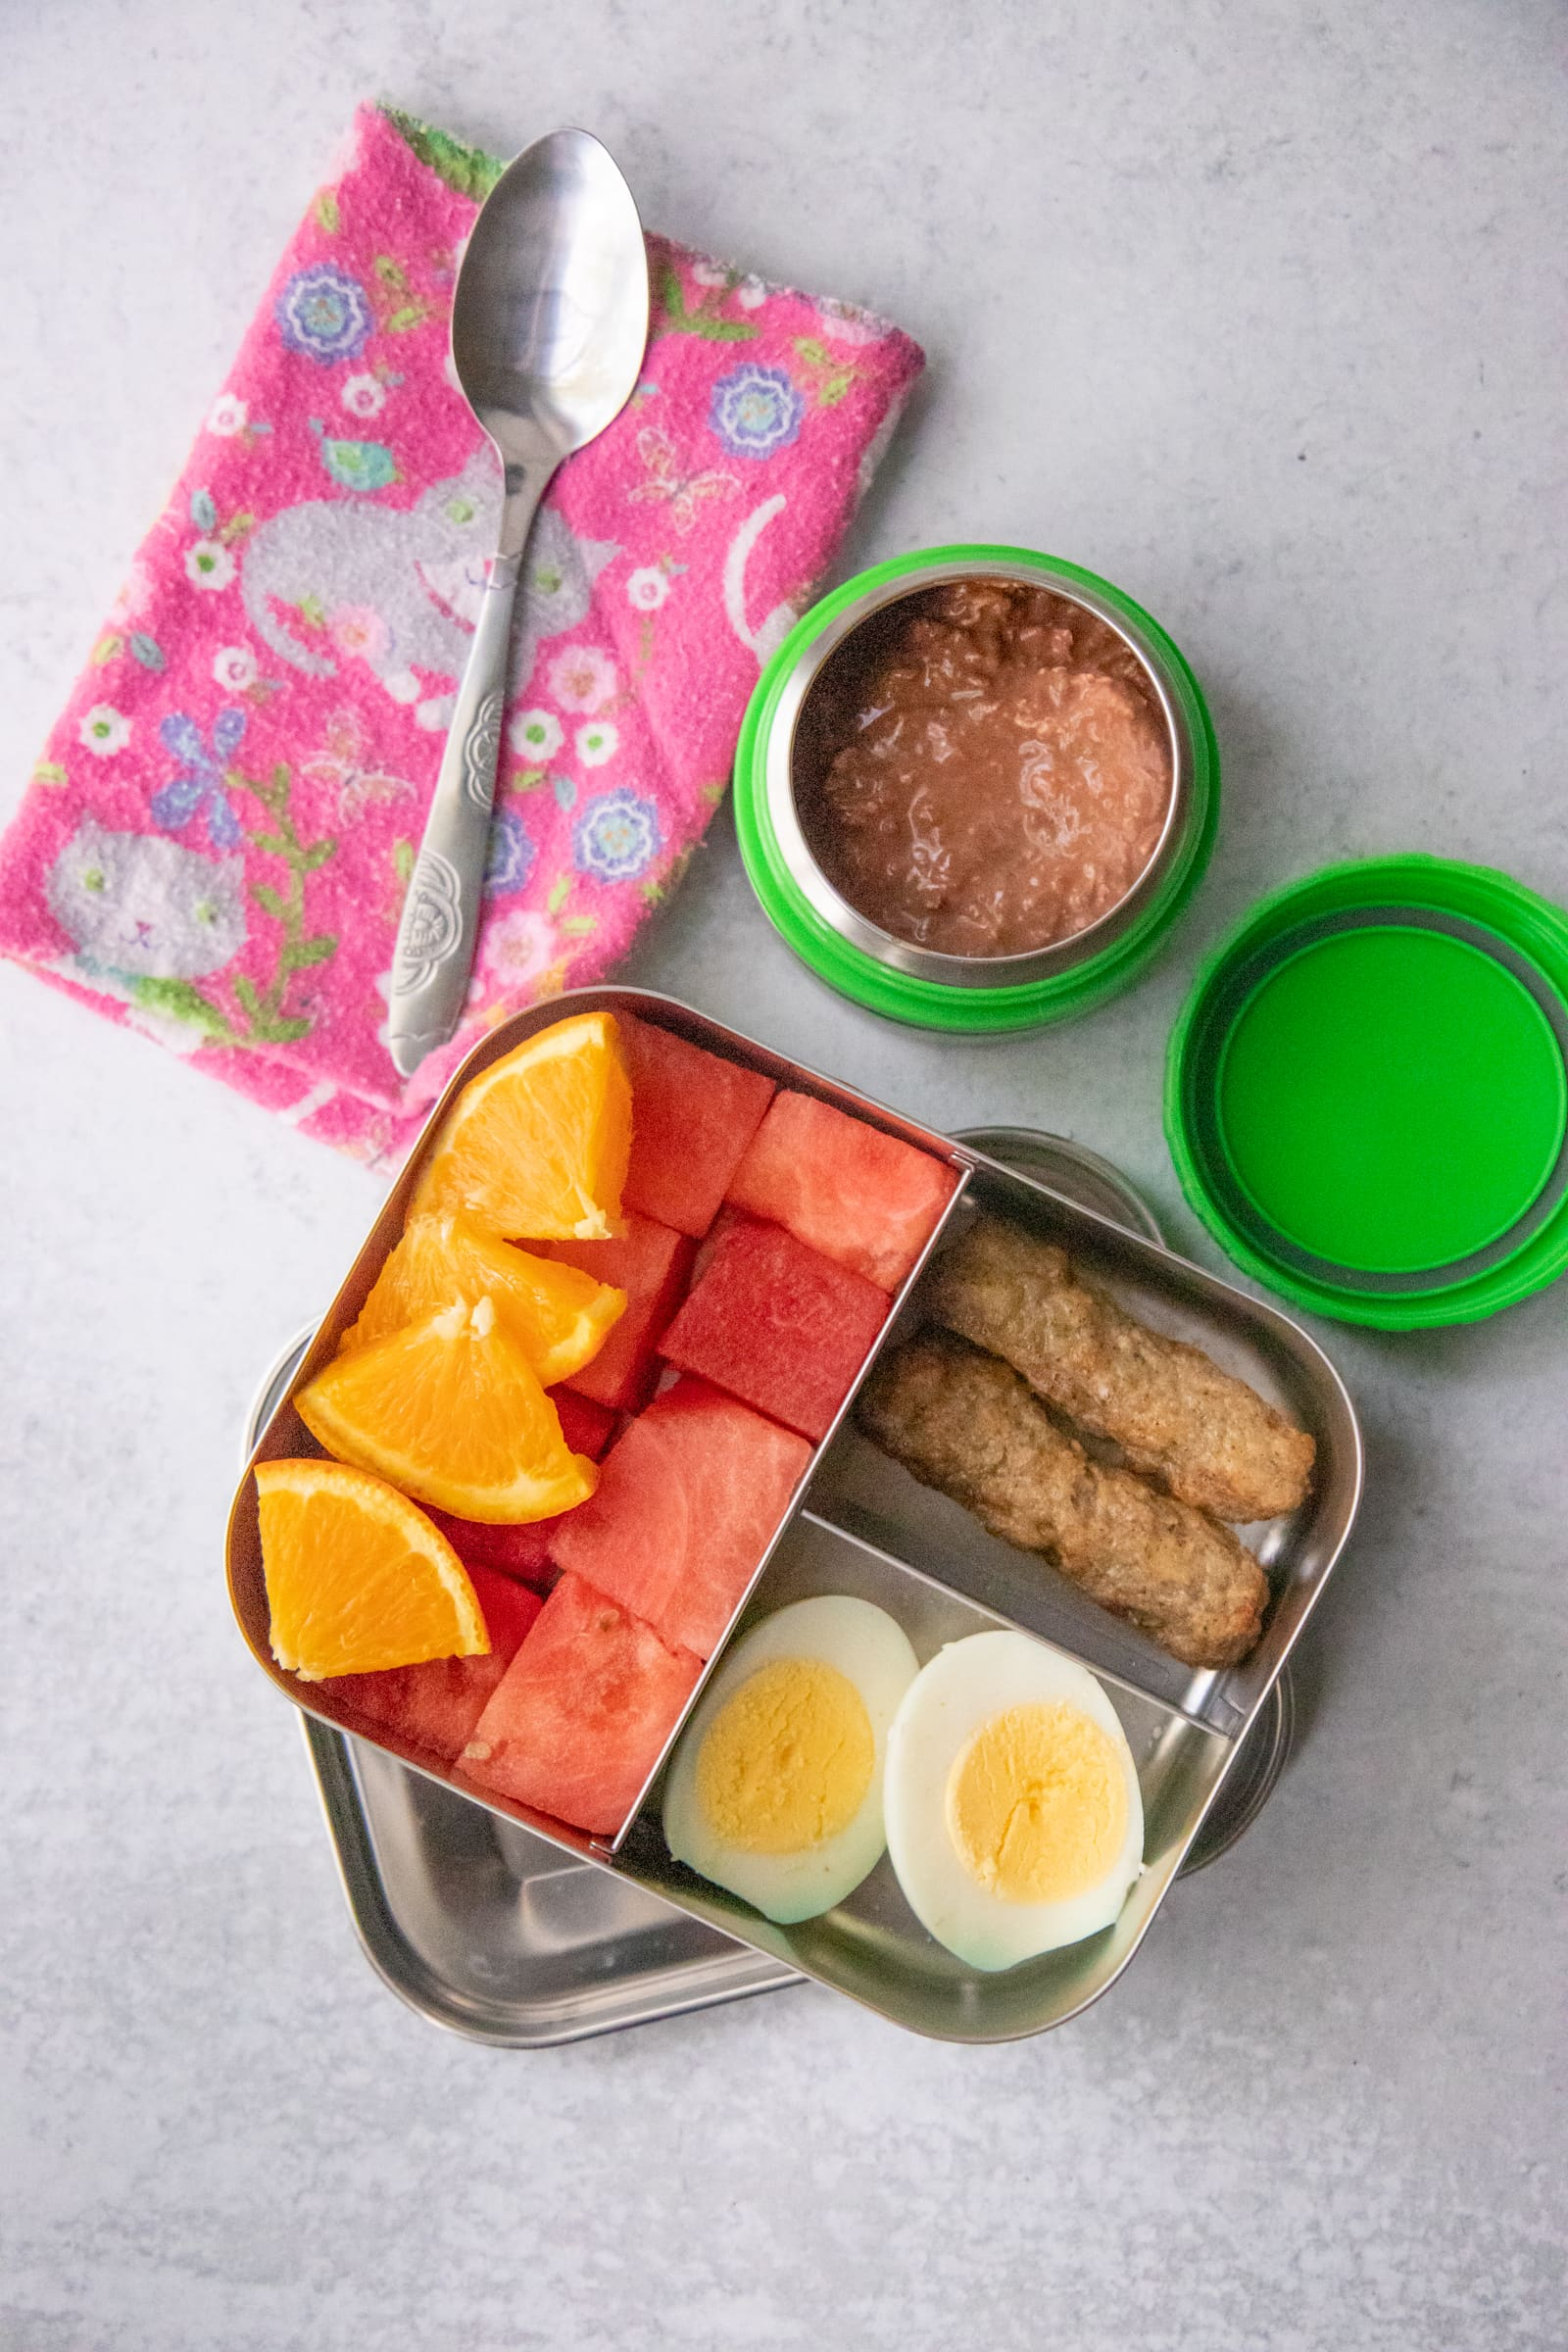 Waste-free packed lunch of sausage links, hard boiled egg, applesauce, and fruit.